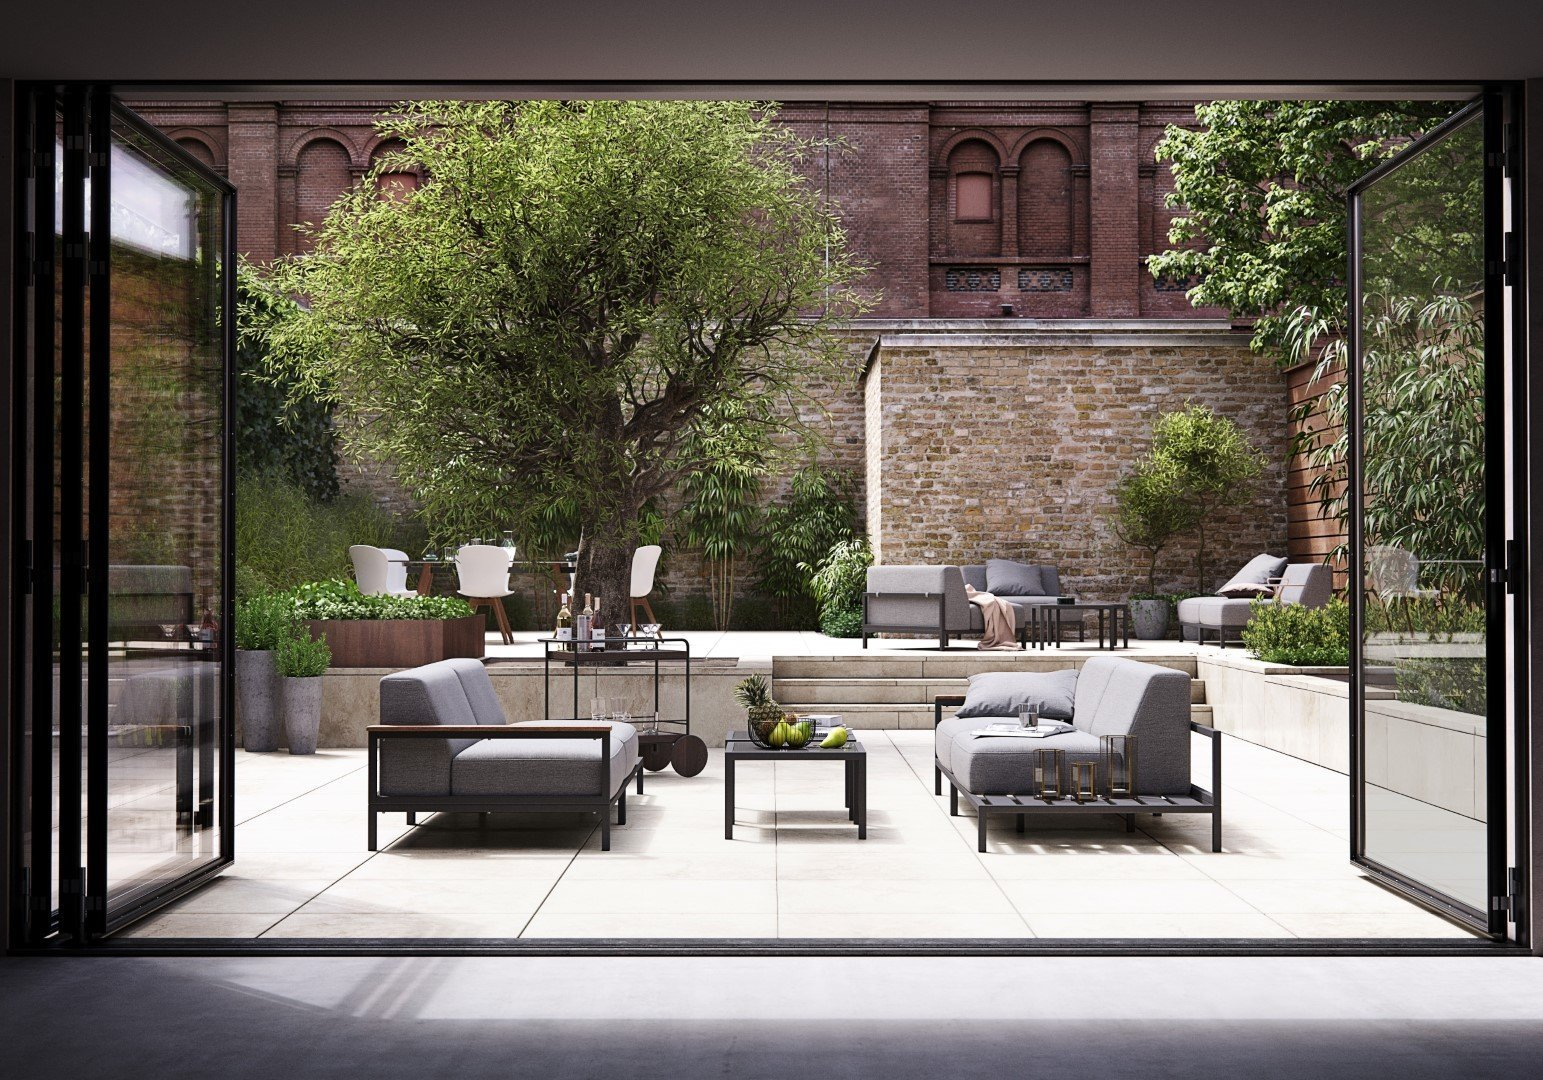 Outdoor lounging and dining furniture